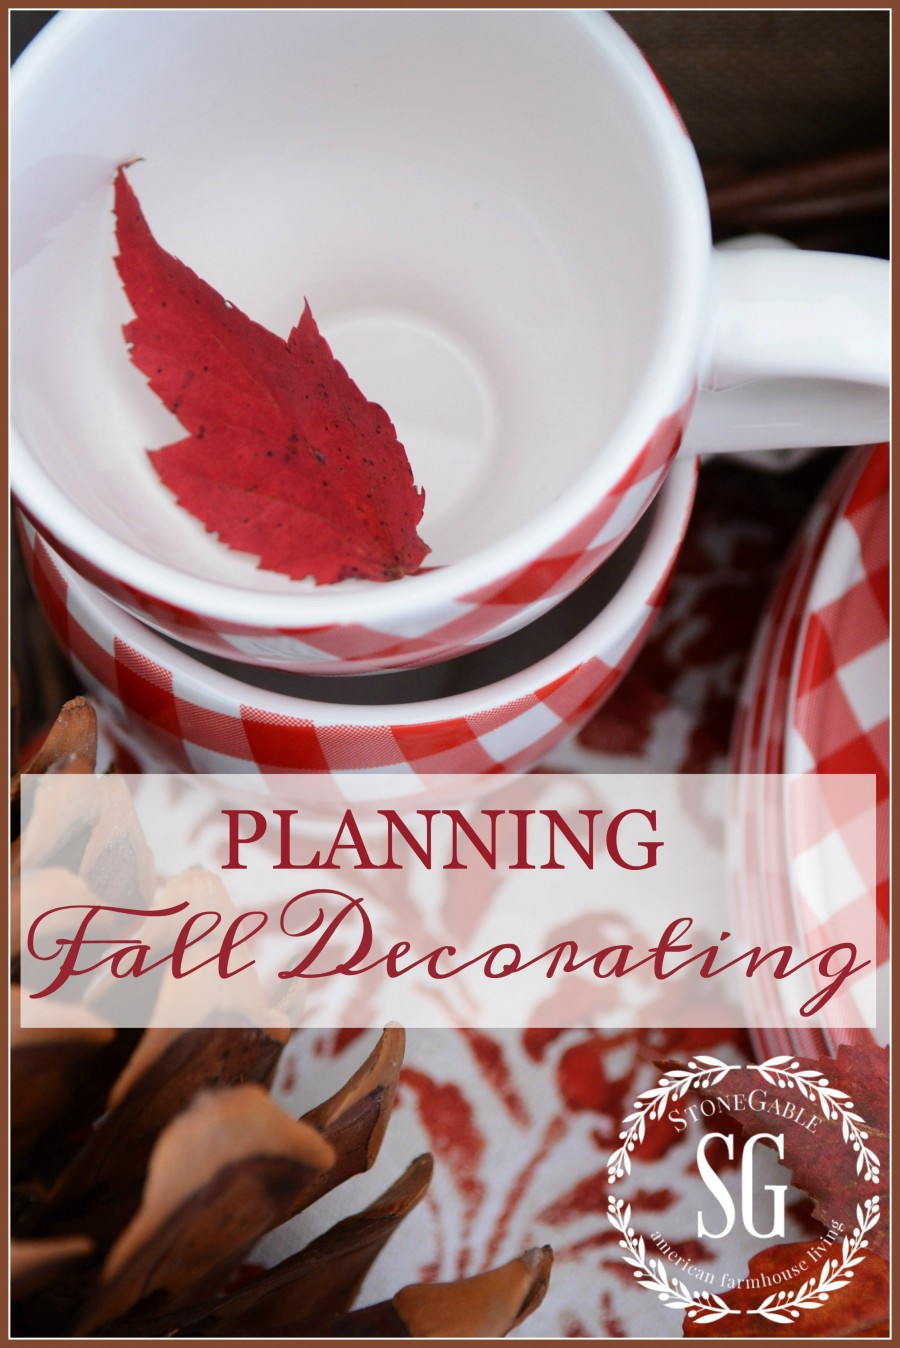 PLANNING FALL DECOR- Start planning now and be ready to decorate when fall rolls around!